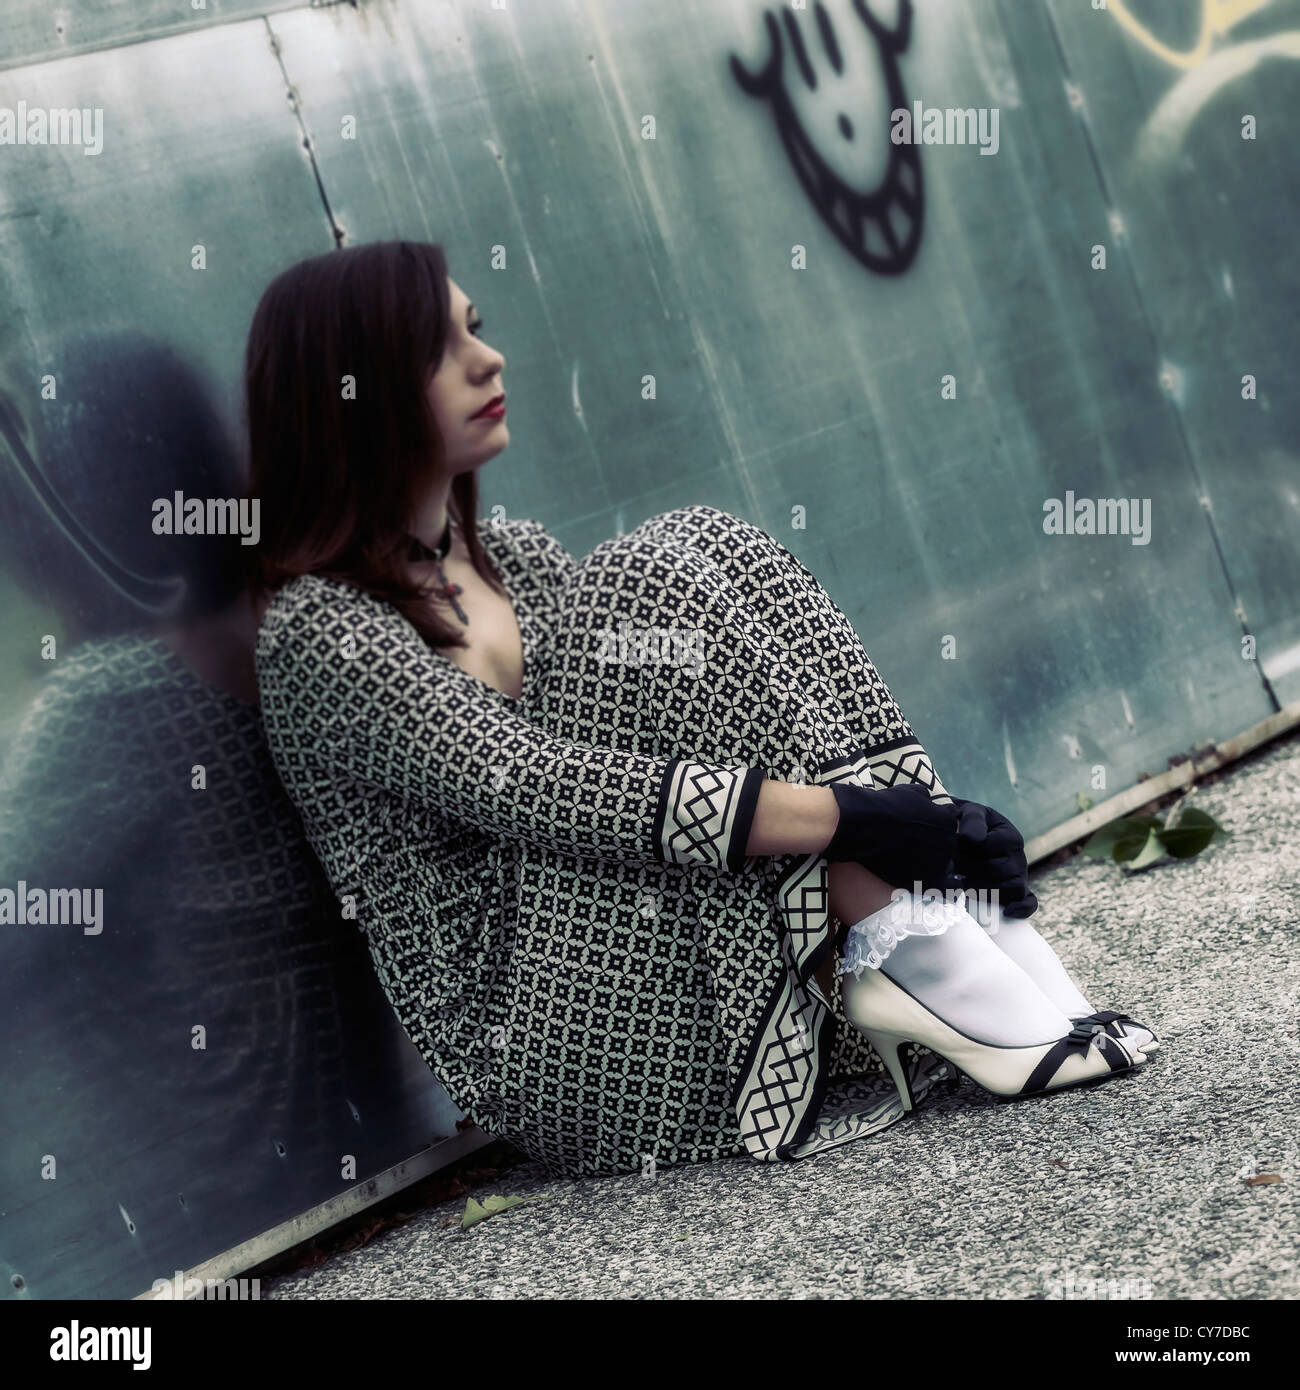 a woman is sitting on a street, leaning against a graffiti wall - Stock Image